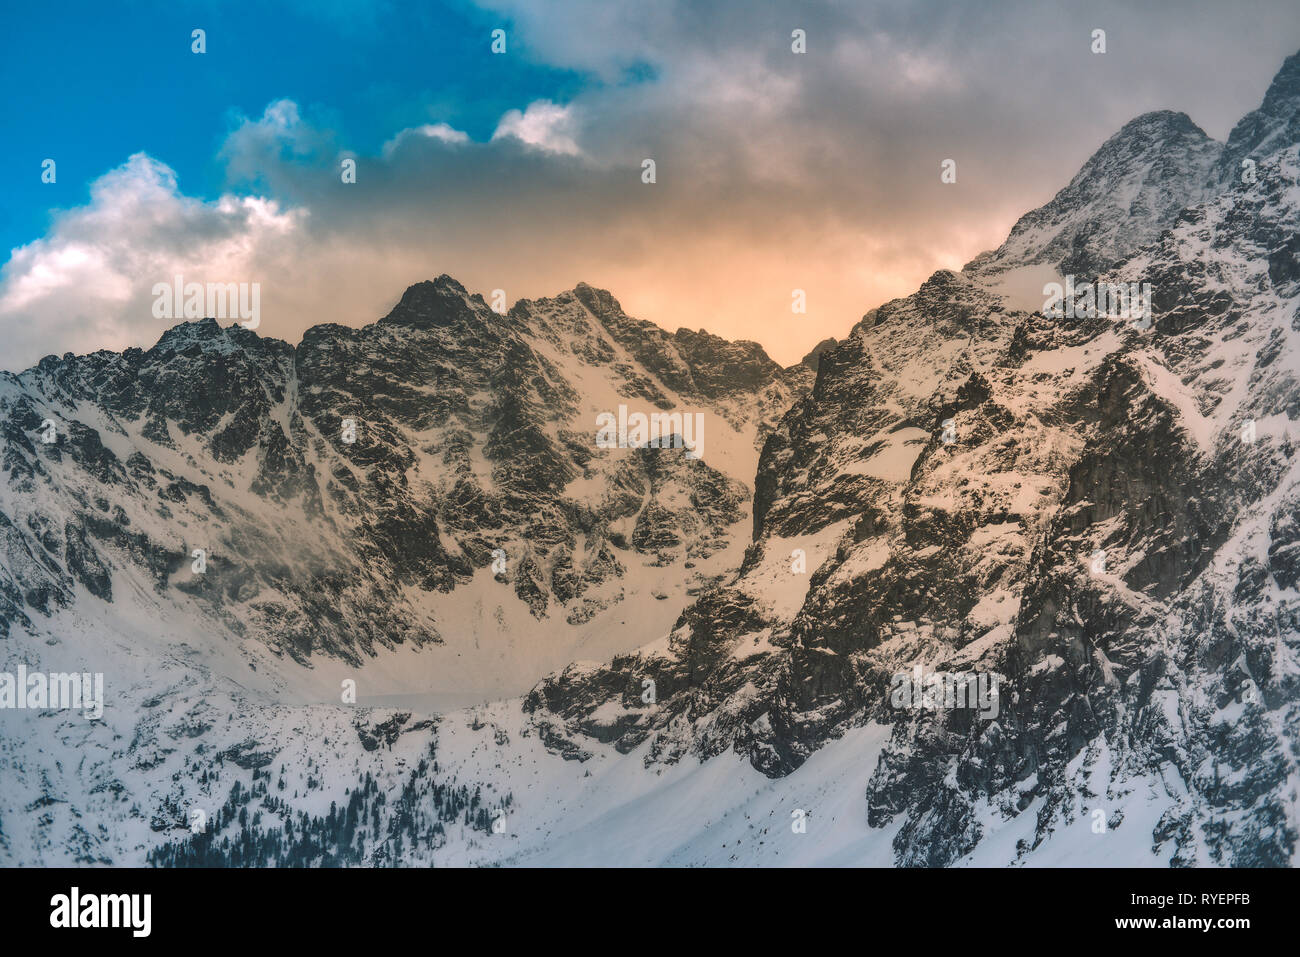 Mountains winter landscape. Tatra mountains in Poland retro vintage tones. - Stock Image